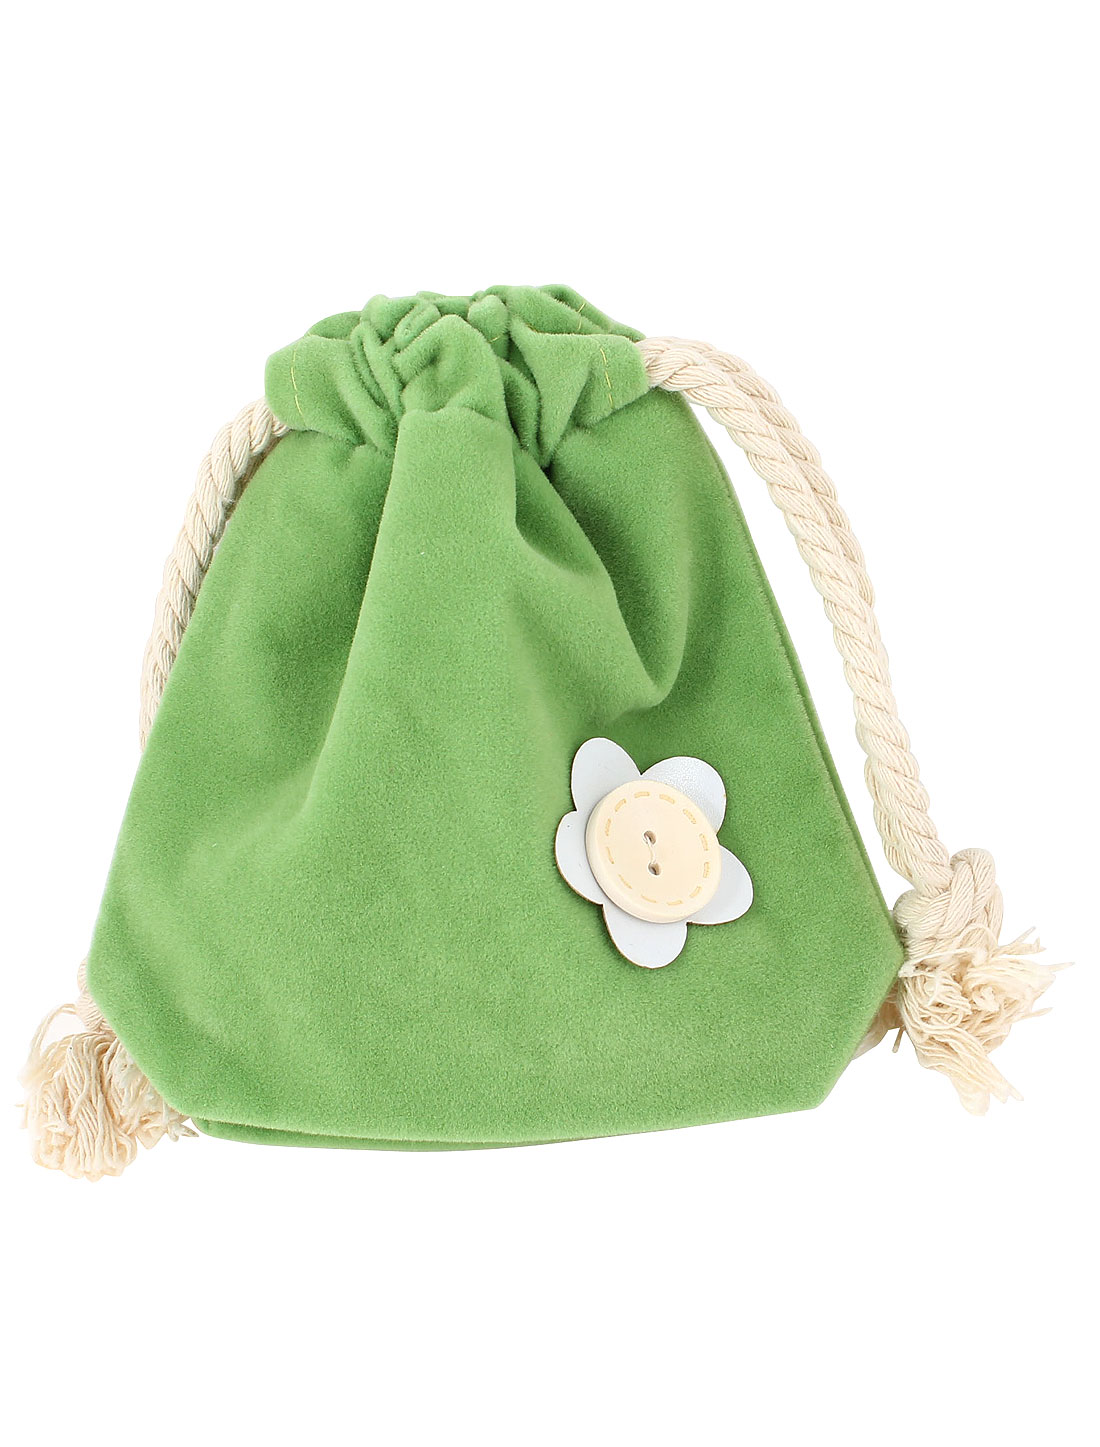 Women Flower Printed Drawstring Closure Key Ring Cash Coin Purse Green